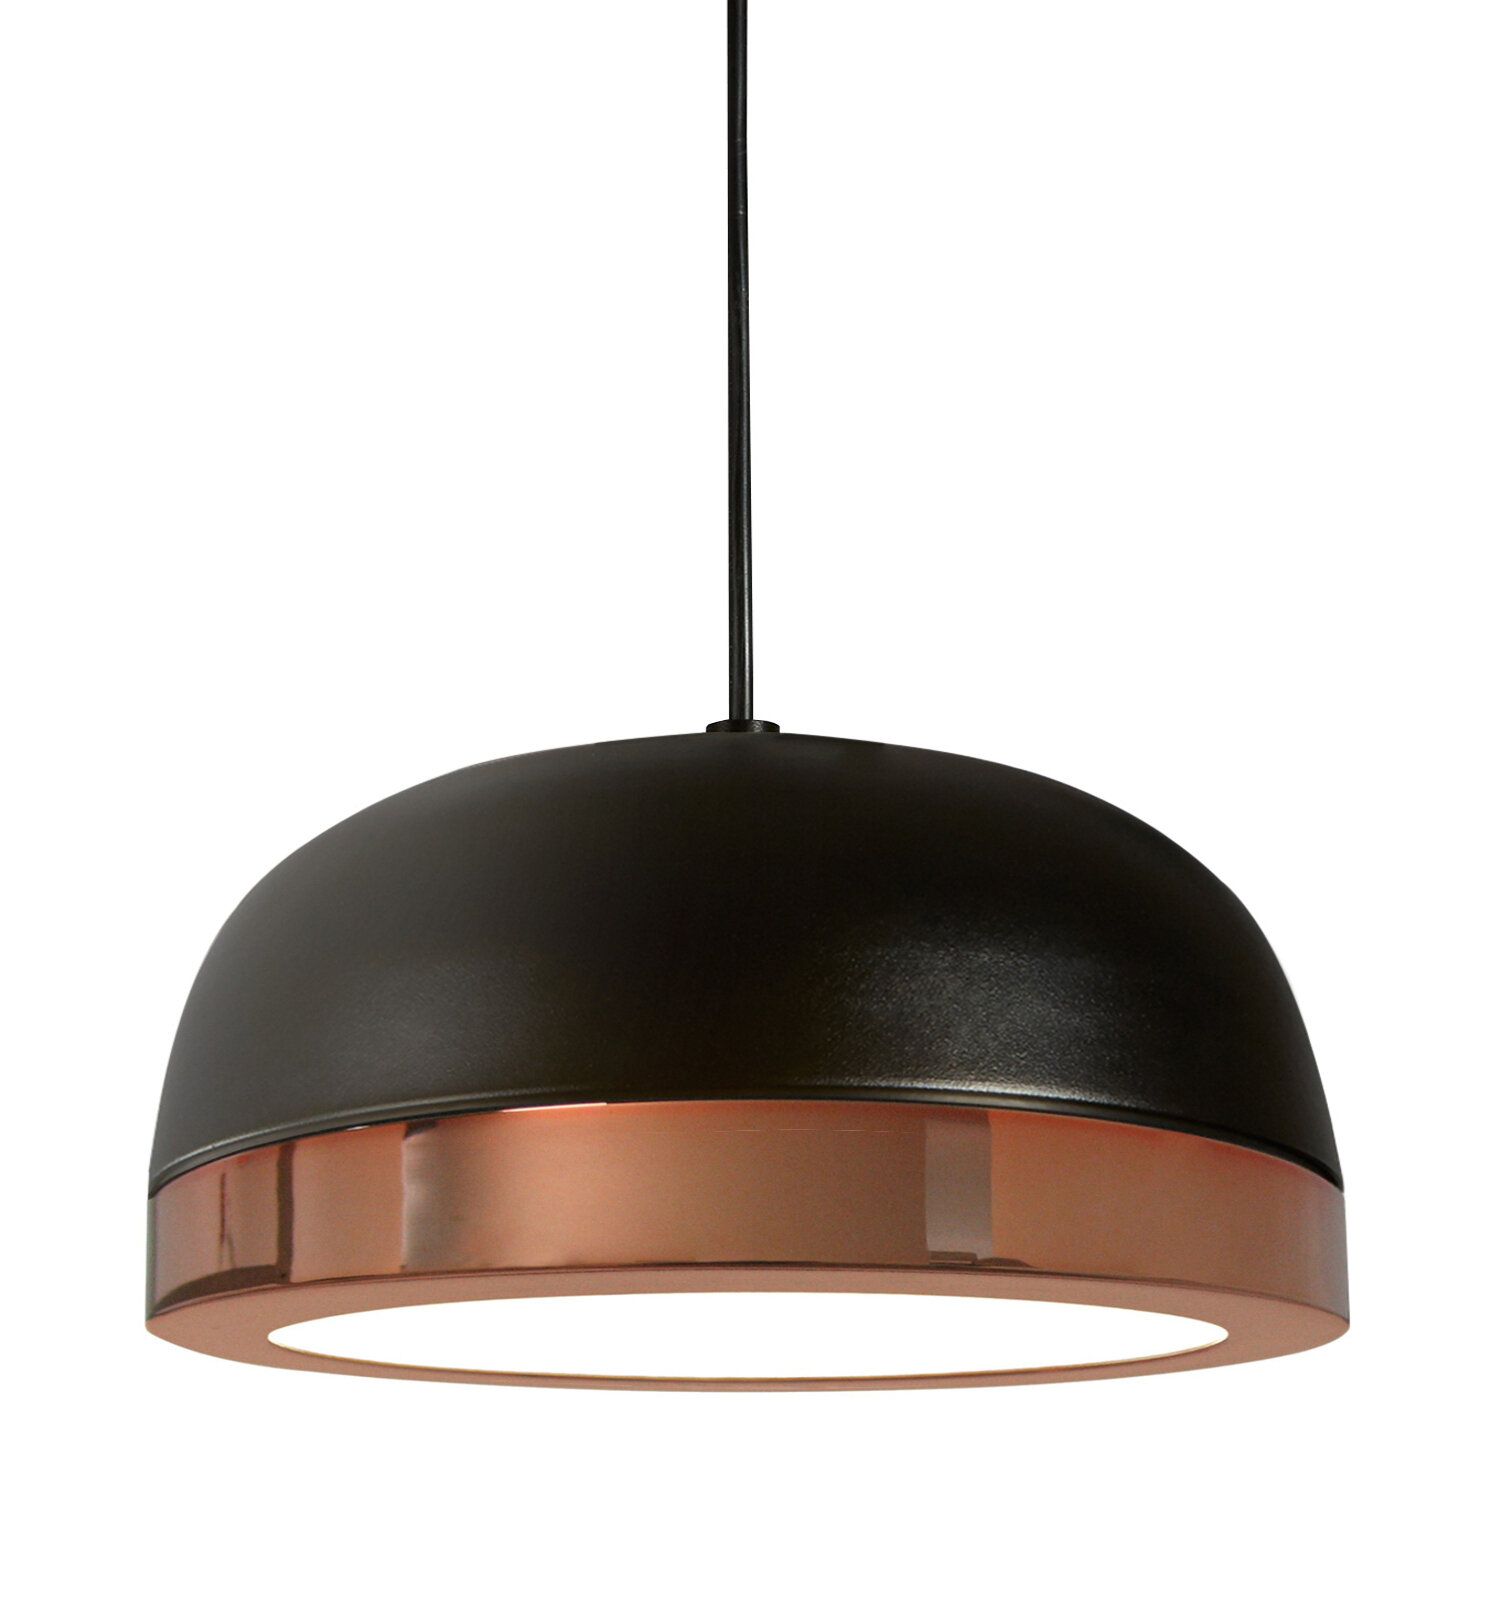 Oggetti Tooy Molly 1 Light Led Dome Pendant Wayfair